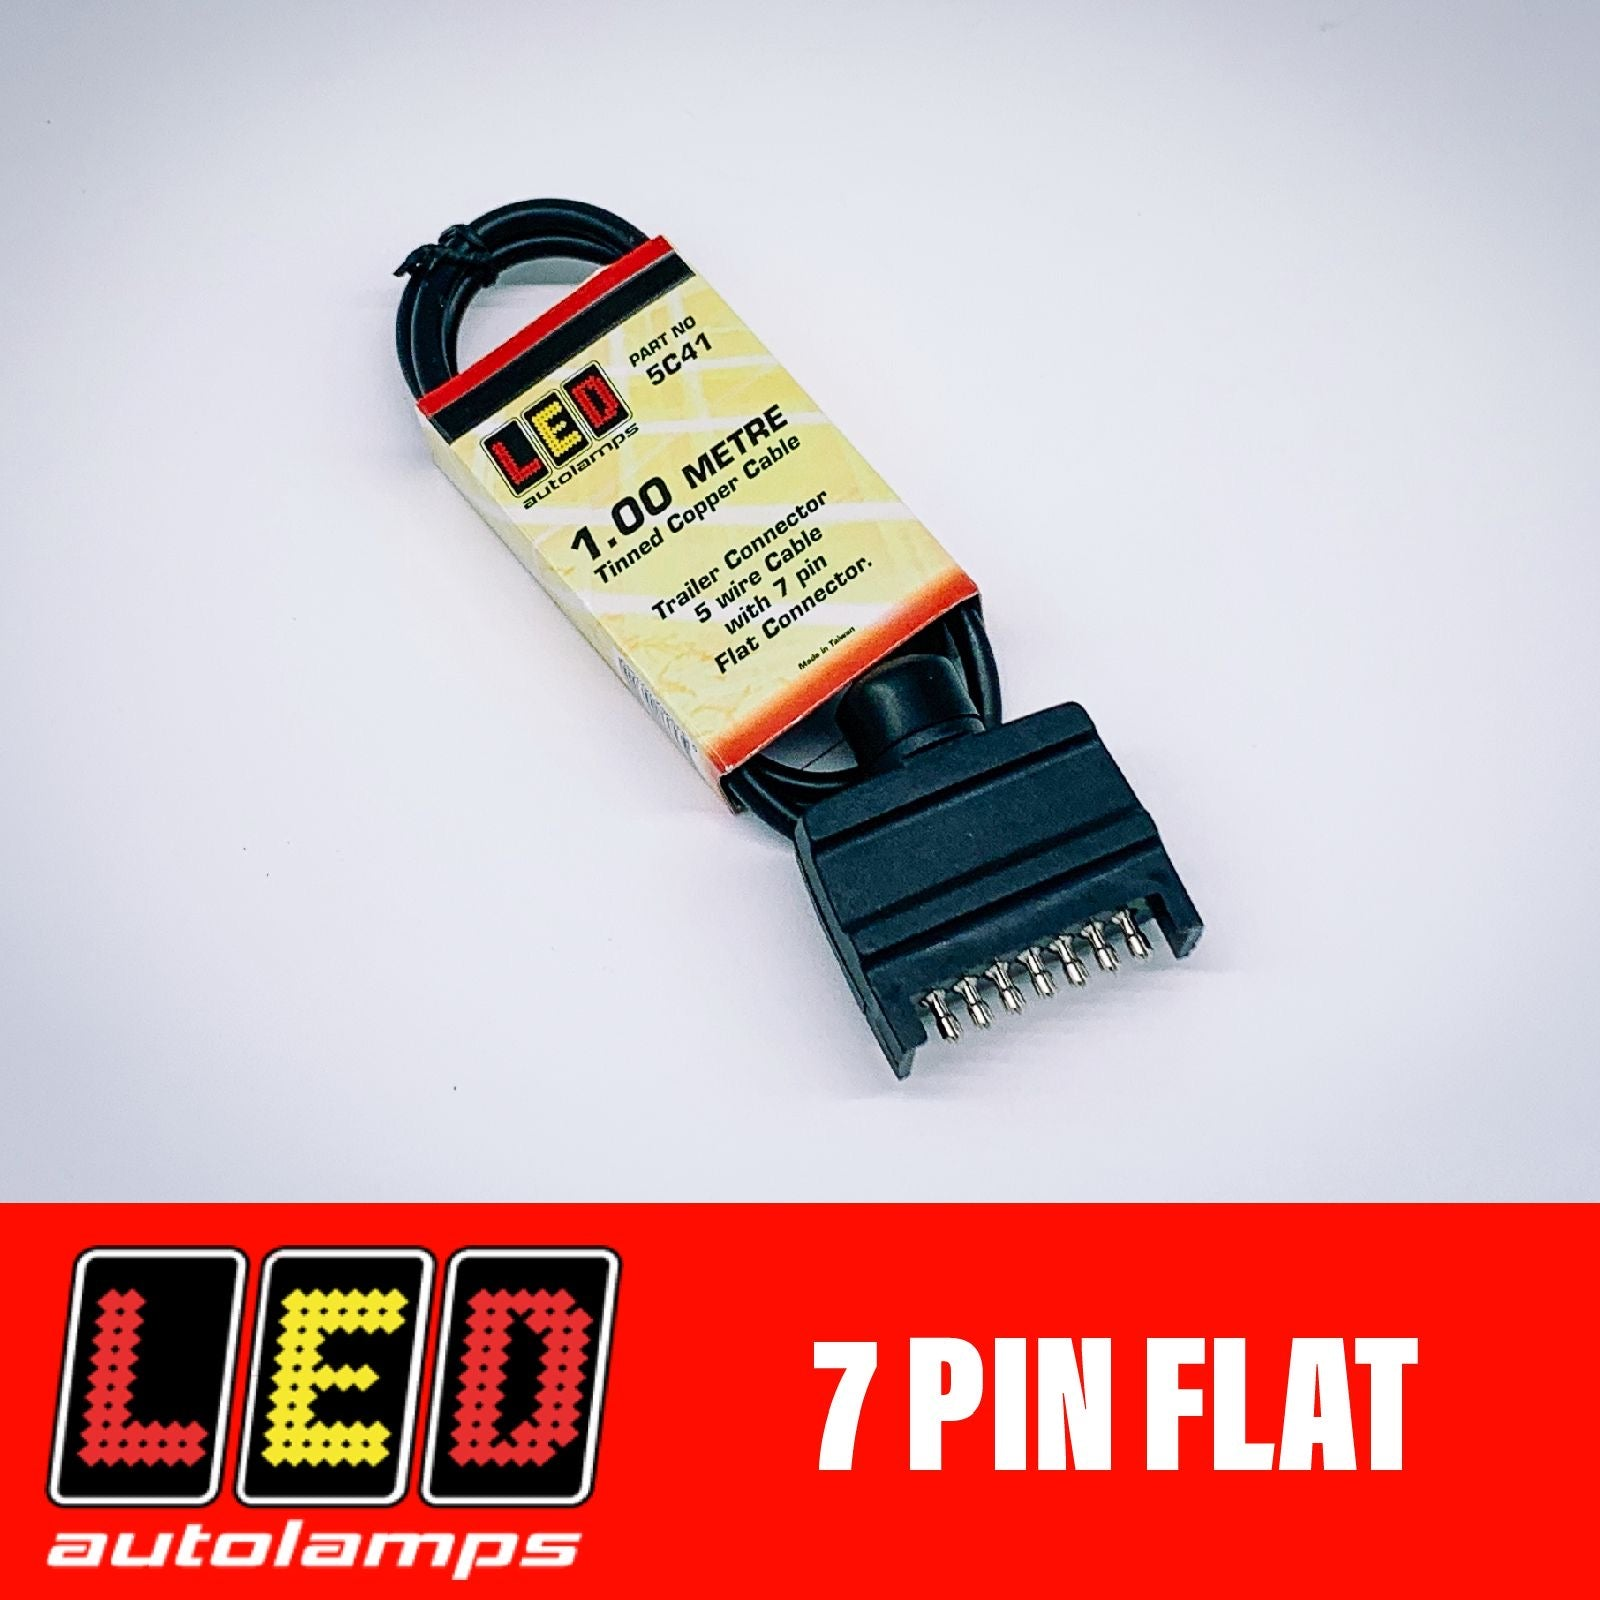 LED AUTOLAMPS 7 PIN FLAT PLUG IN HARNESS